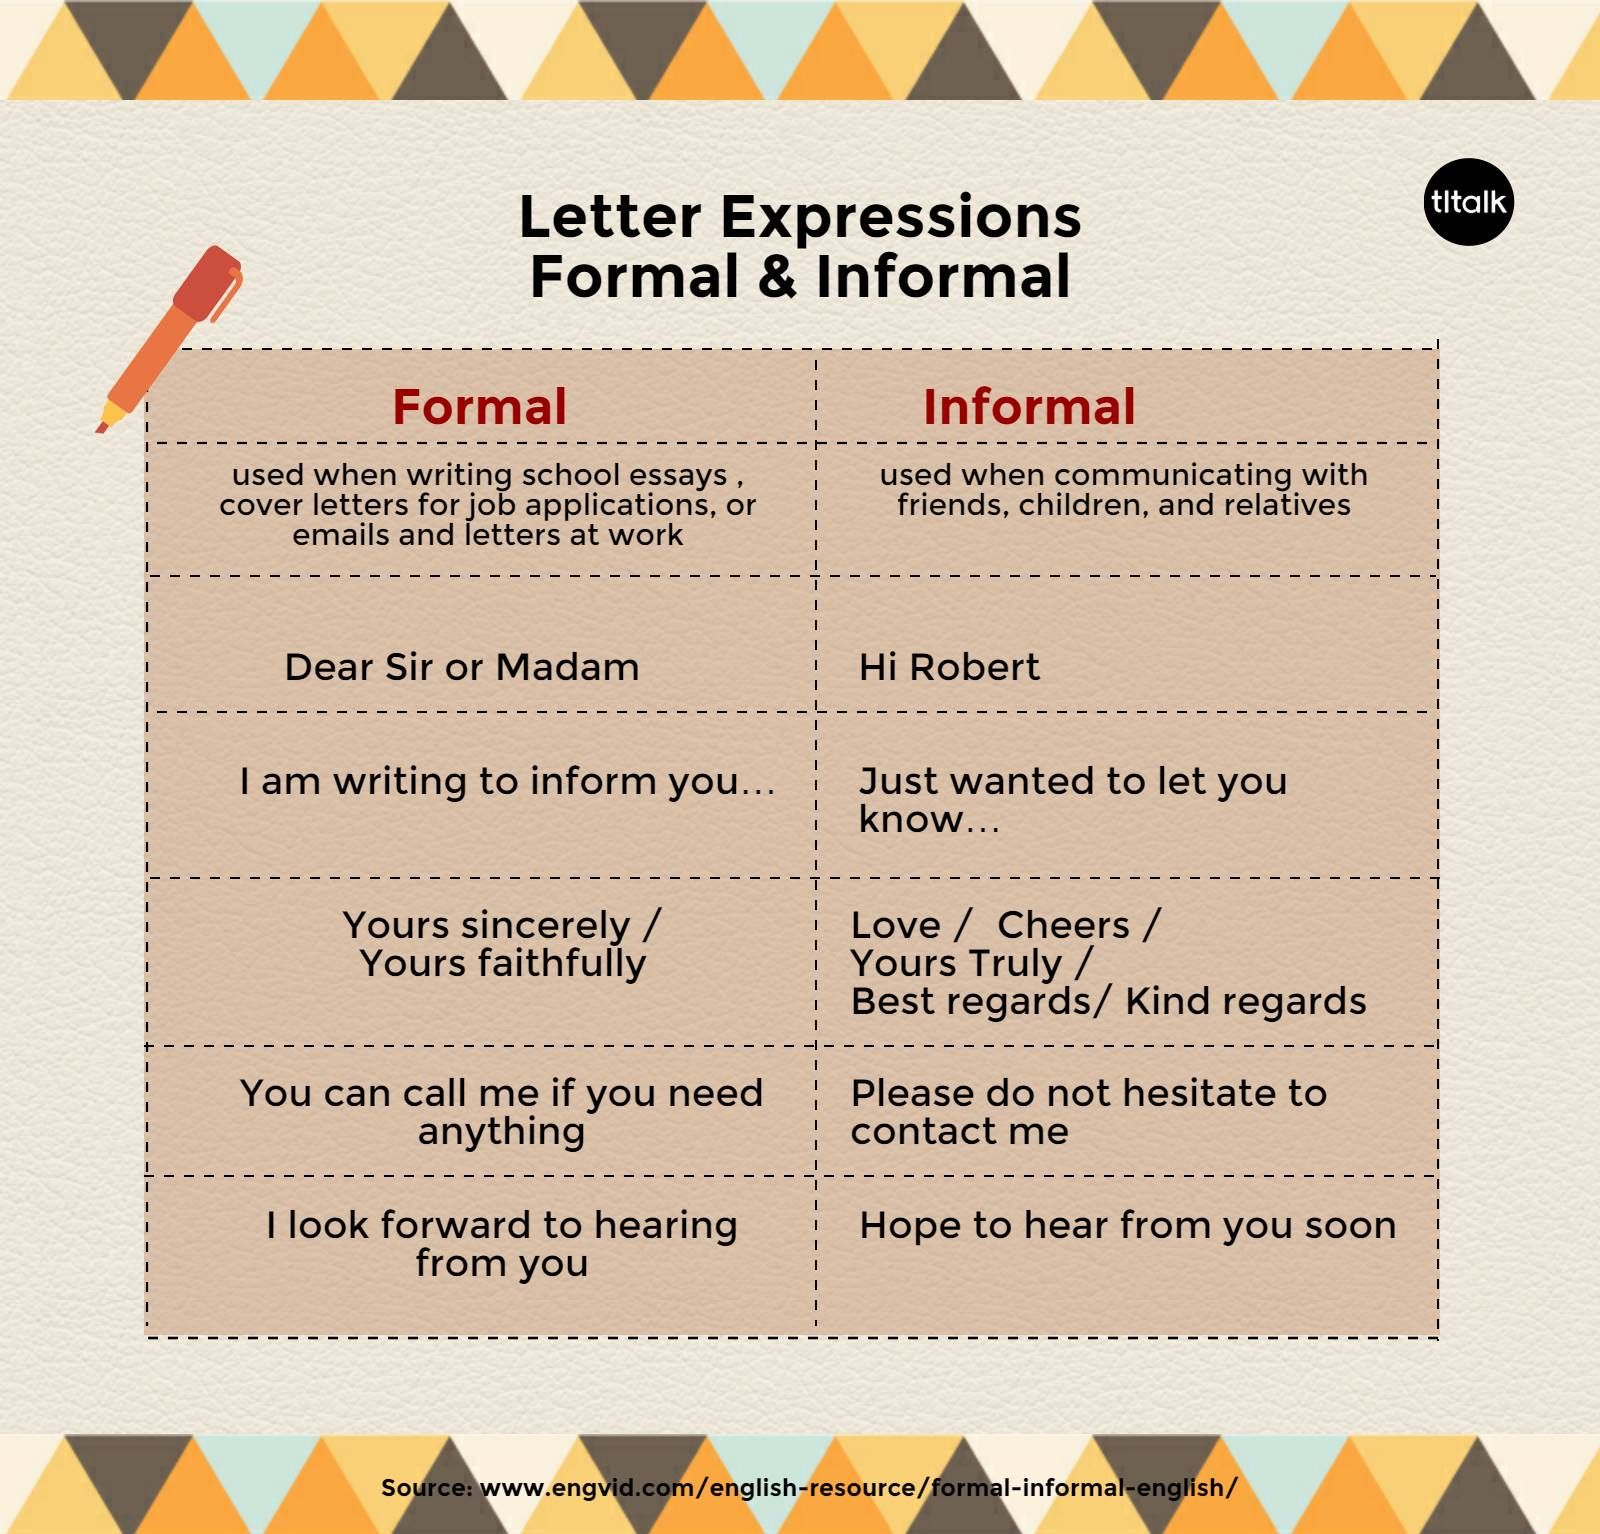 Formal expressions in english essay